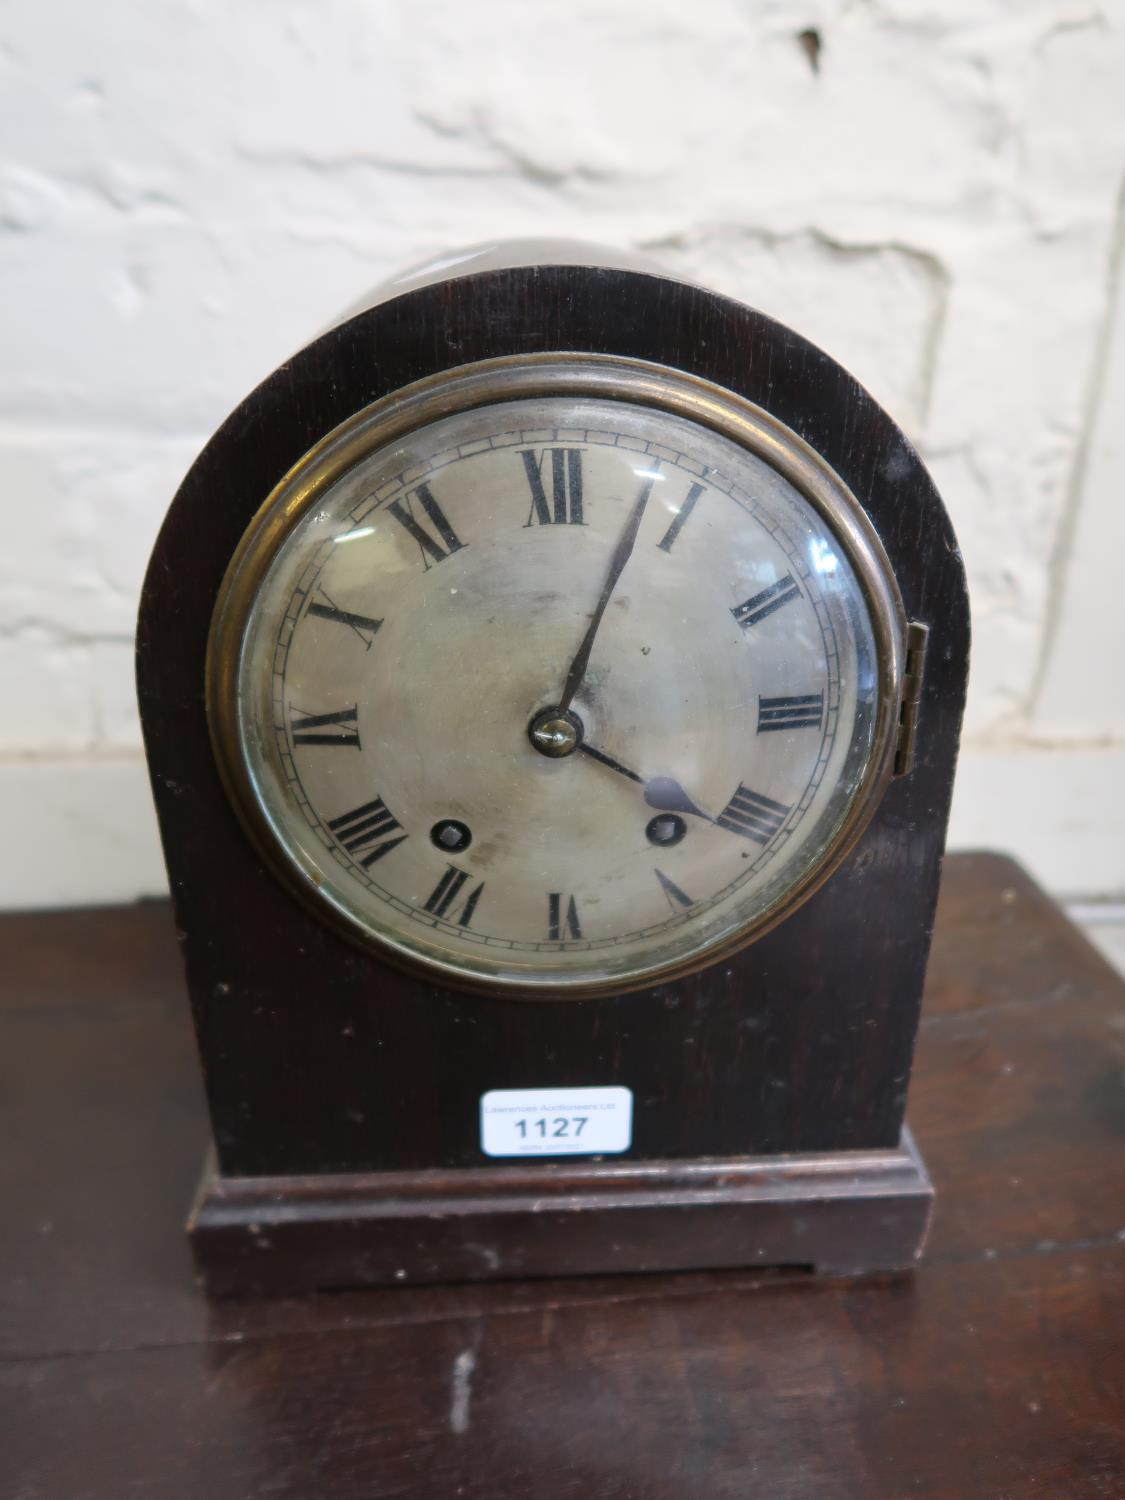 Early 20th Century mahogany dome shaped mantel clock with a circular silvered dial, Roman numerals